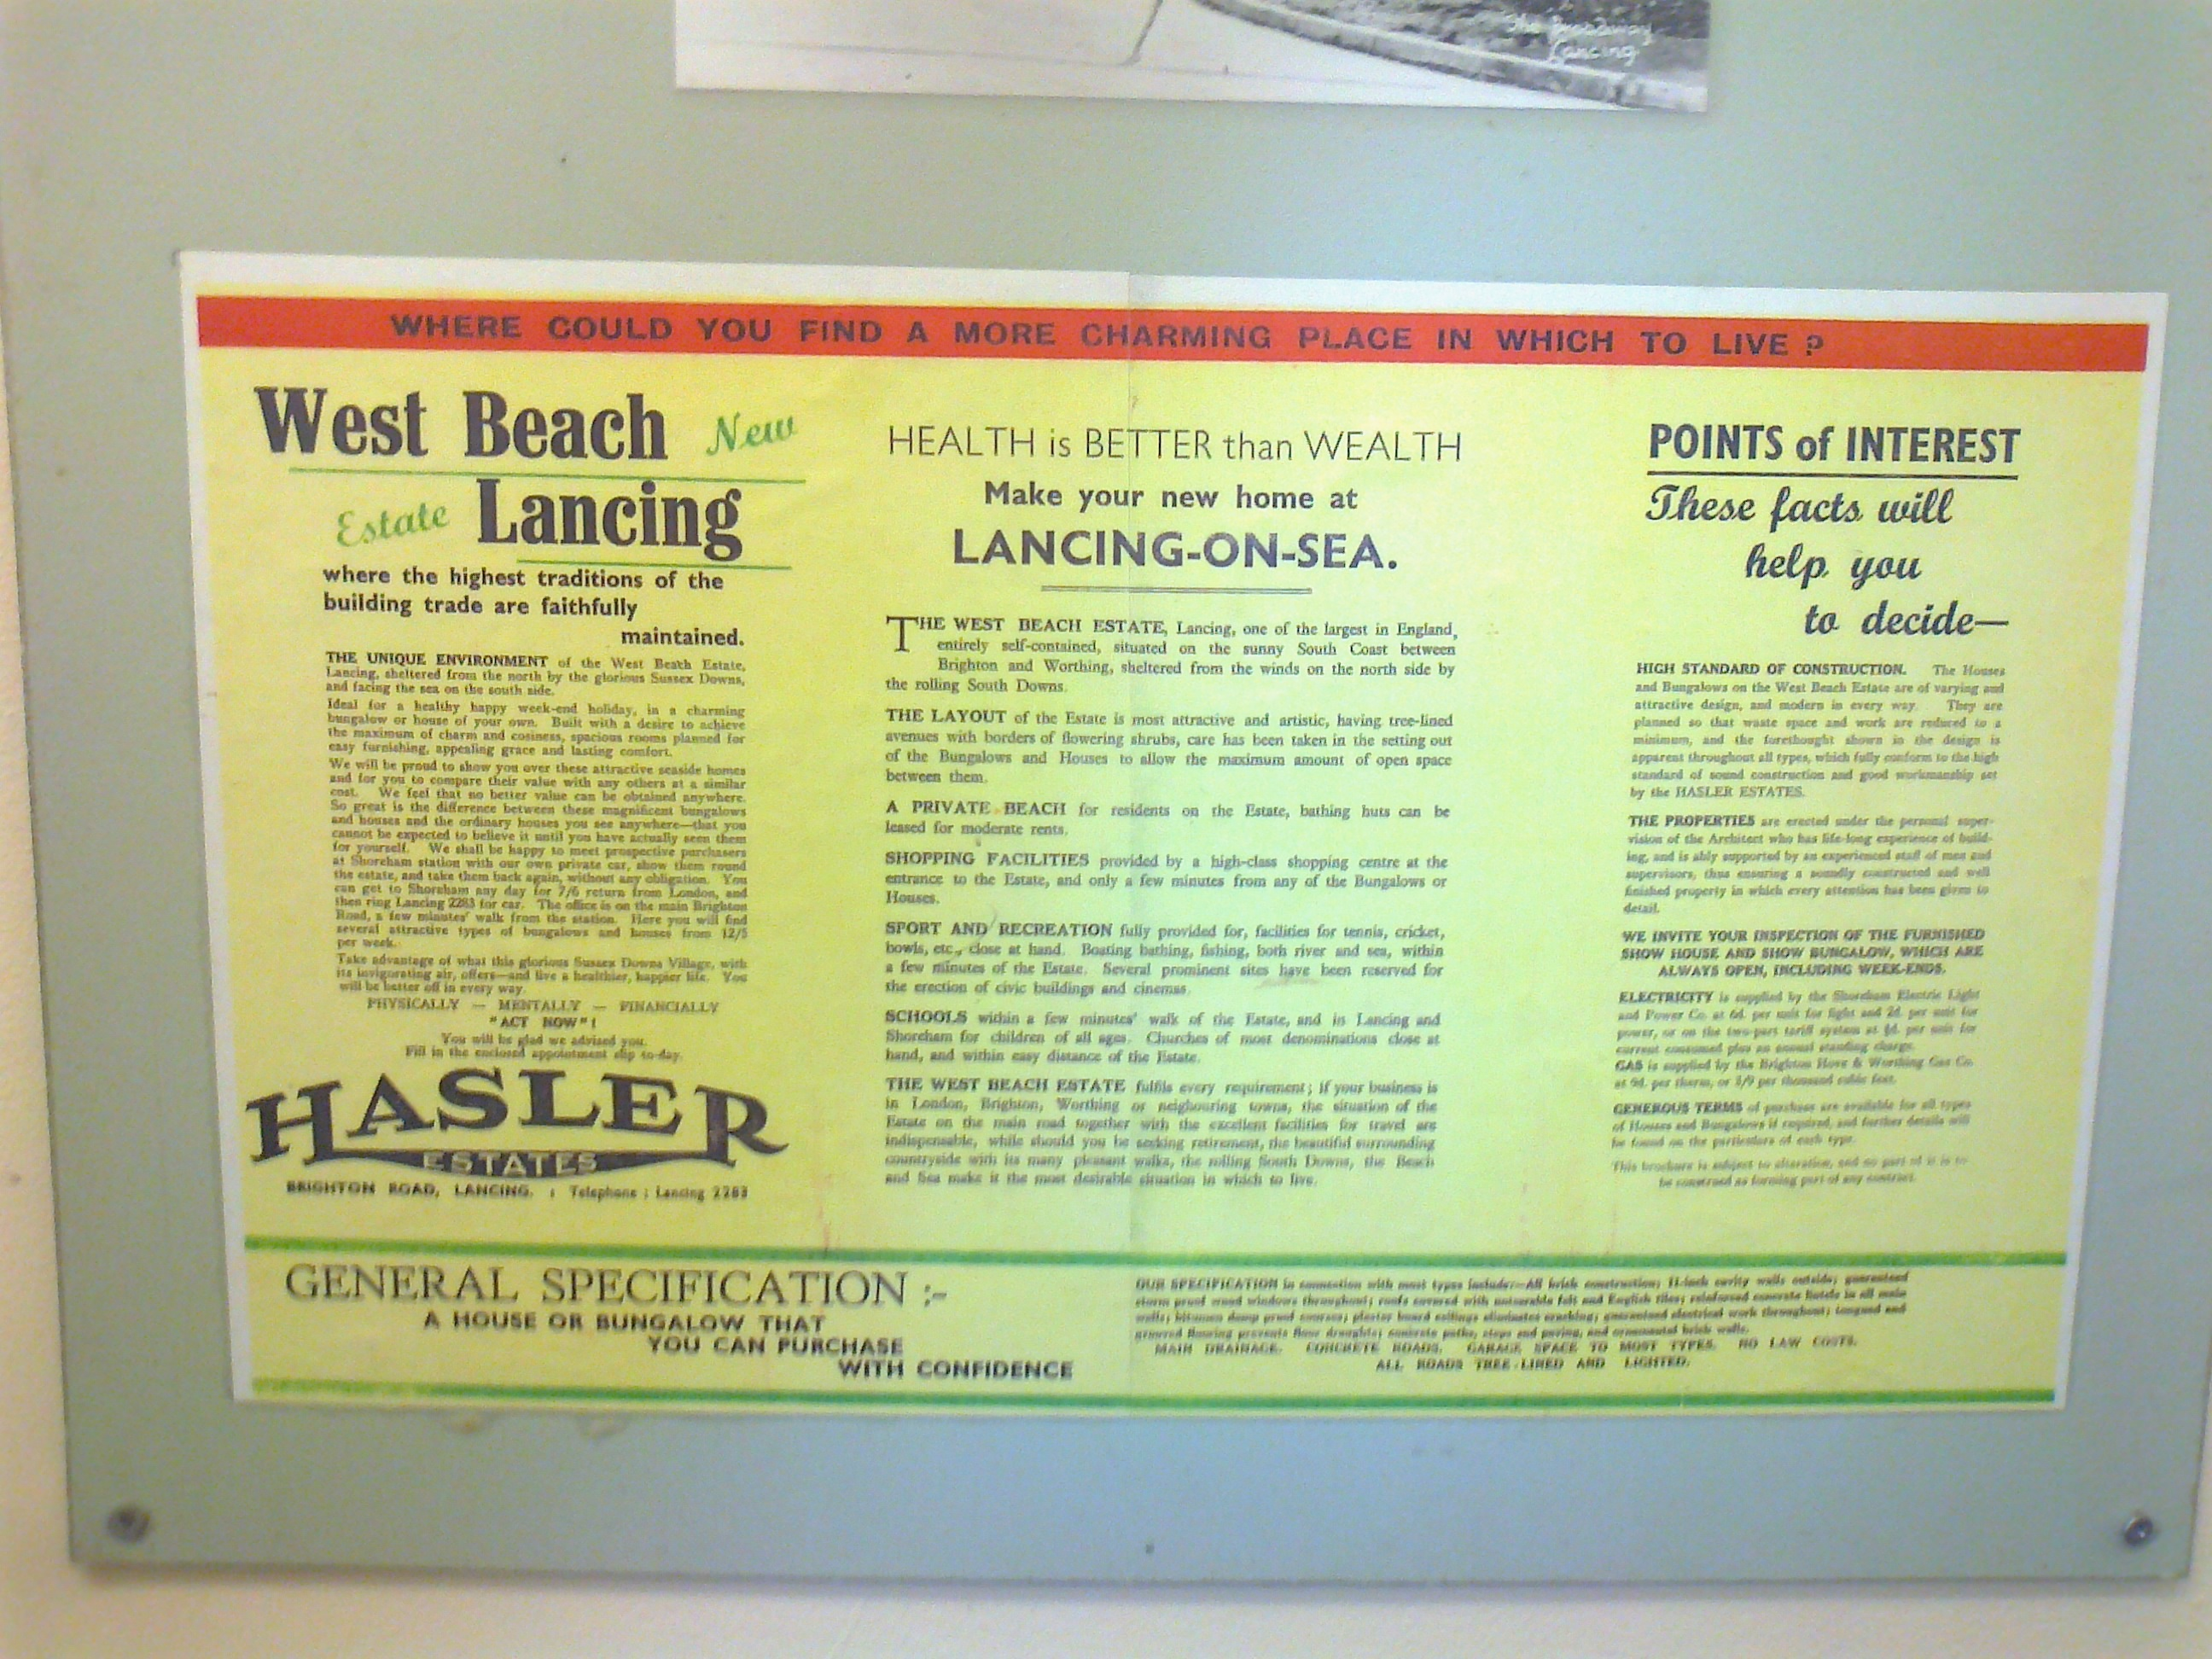 Advertisement for the sale of West Beach homes circa 1930 for the company Hasler Estates.